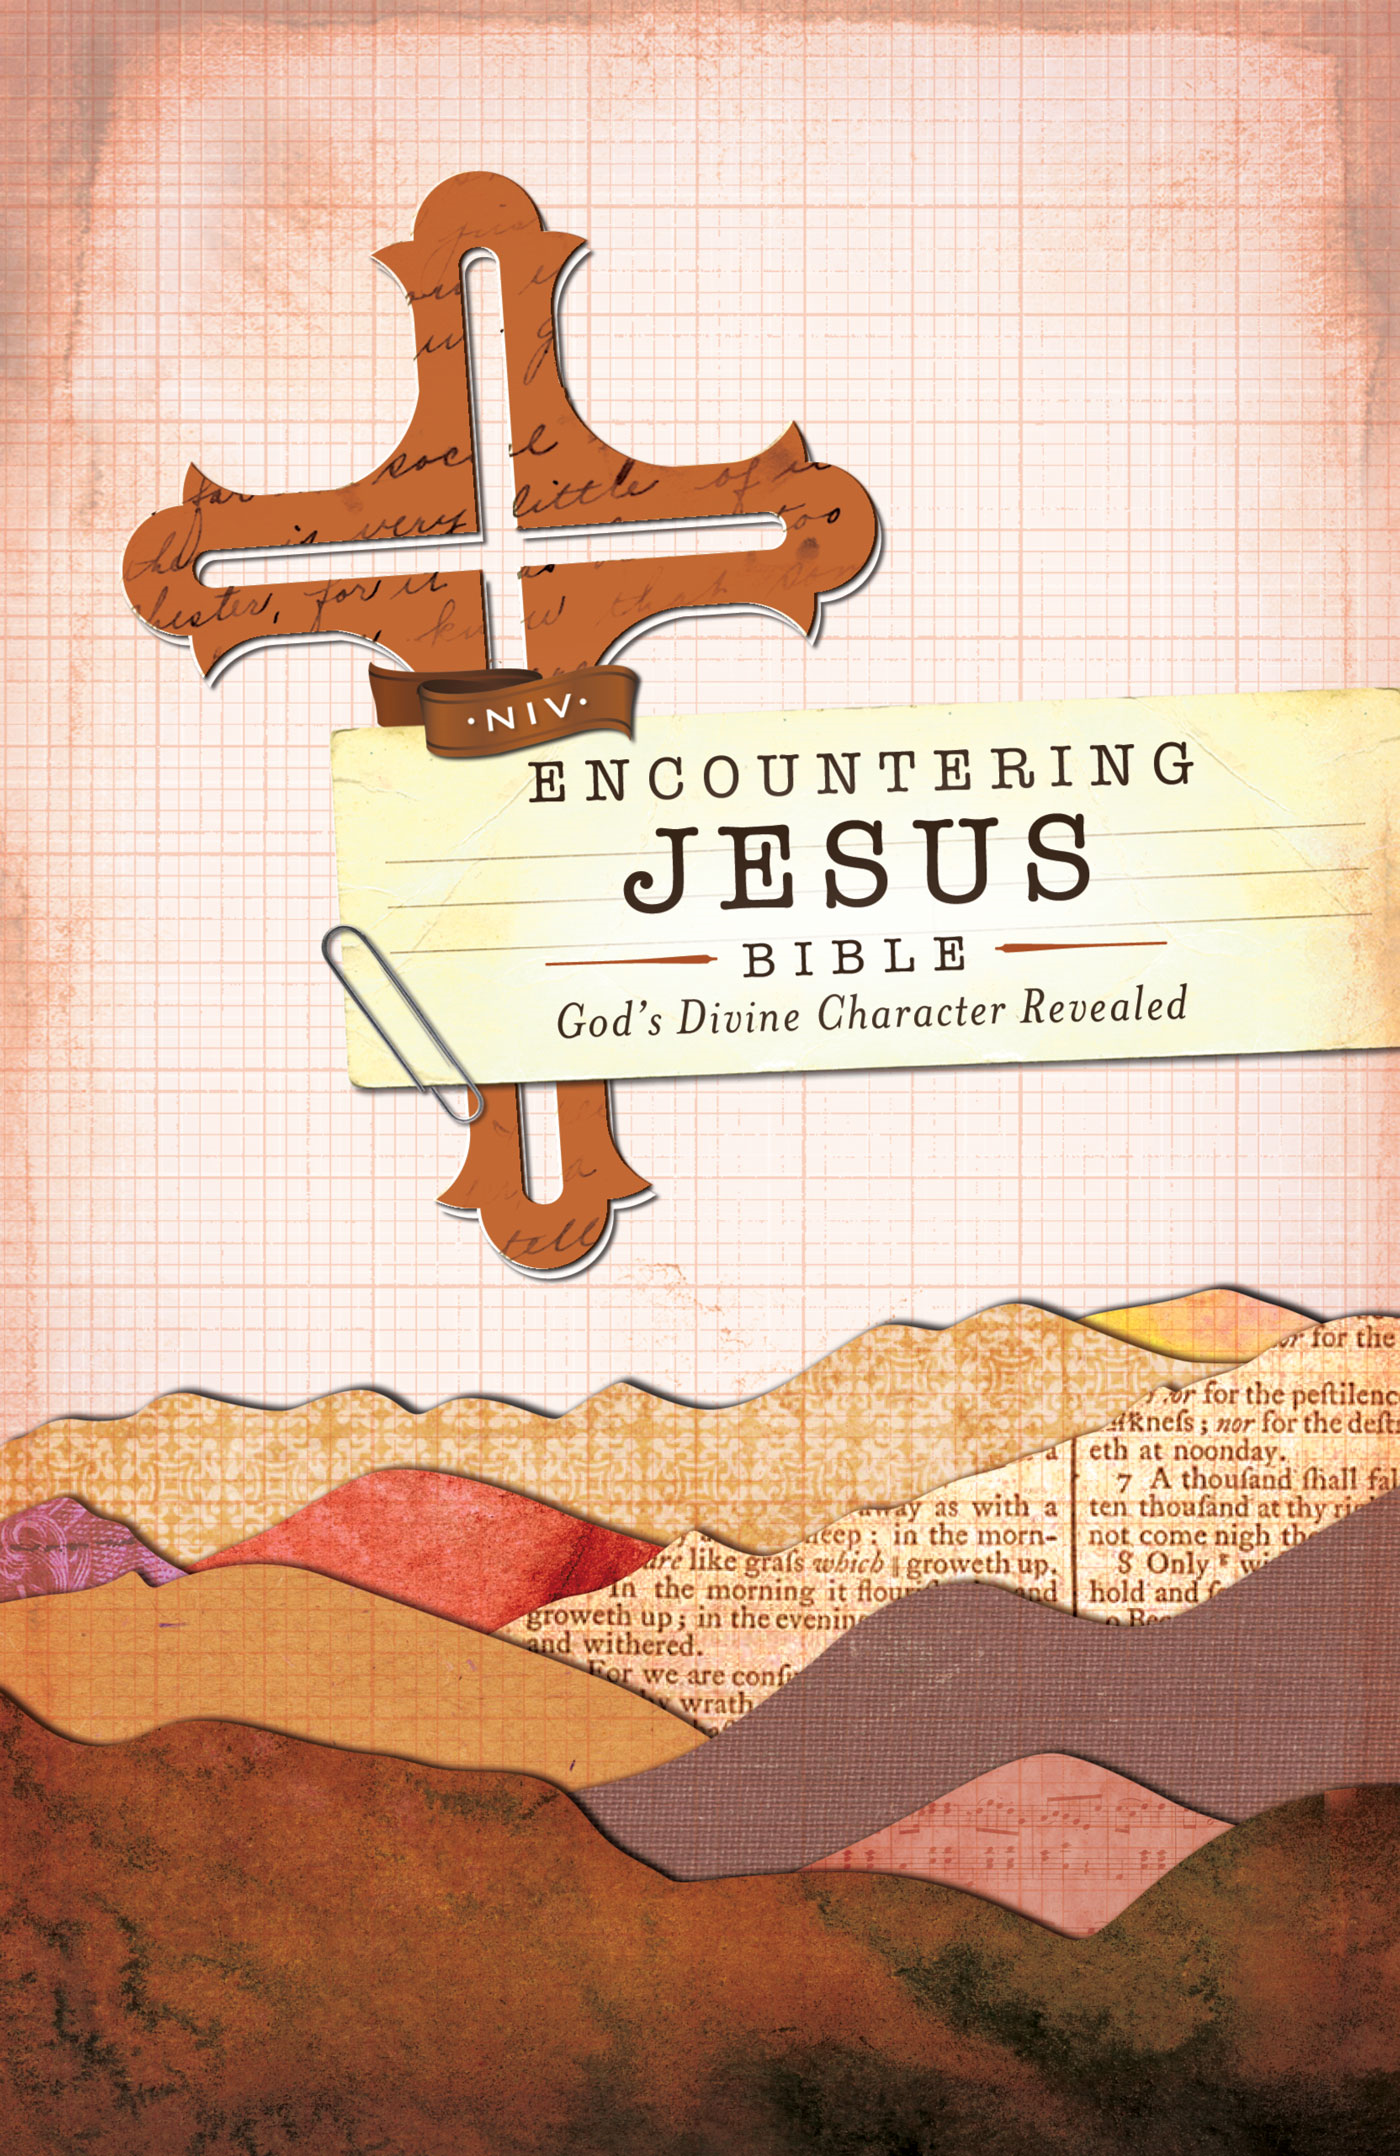 NIV Encountering Jesus Bible By: Zondervan